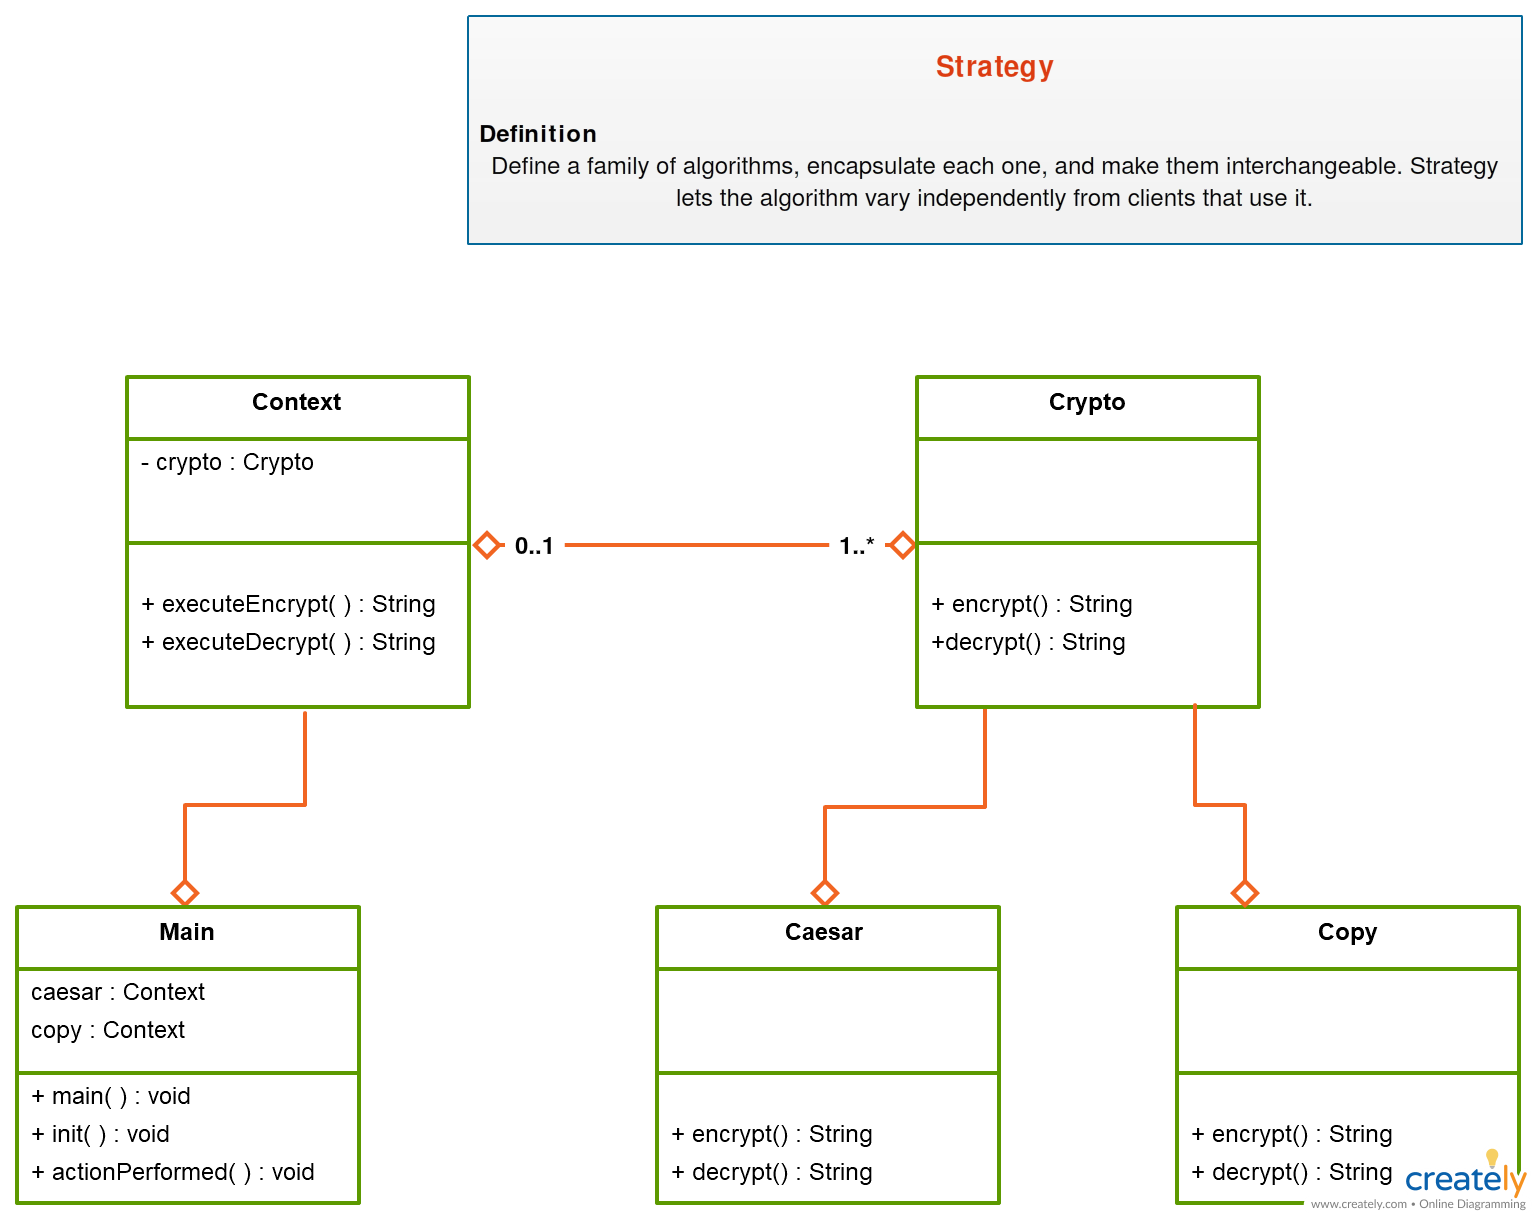 Uml Class Diagram For Cryptography Cryptography Not Only Protects Data From Theft Or Alteration But Can Also Be Used F Cryptography Activity Diagram Diagram